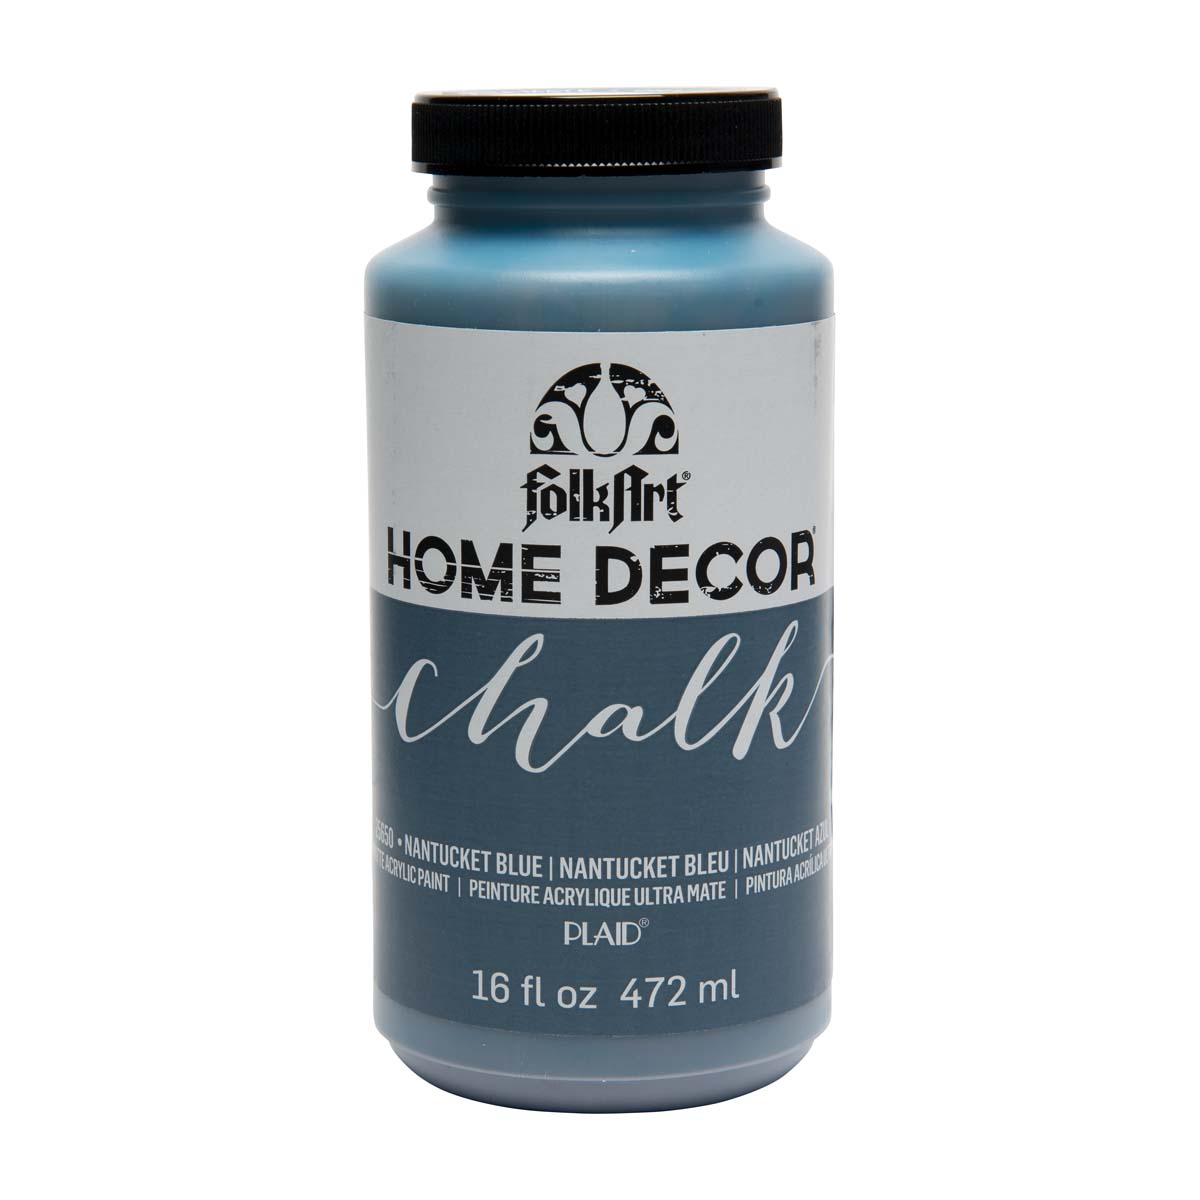 F/A HOME DECOR CHALK - NANTUCKET BLUE 16 OZ.